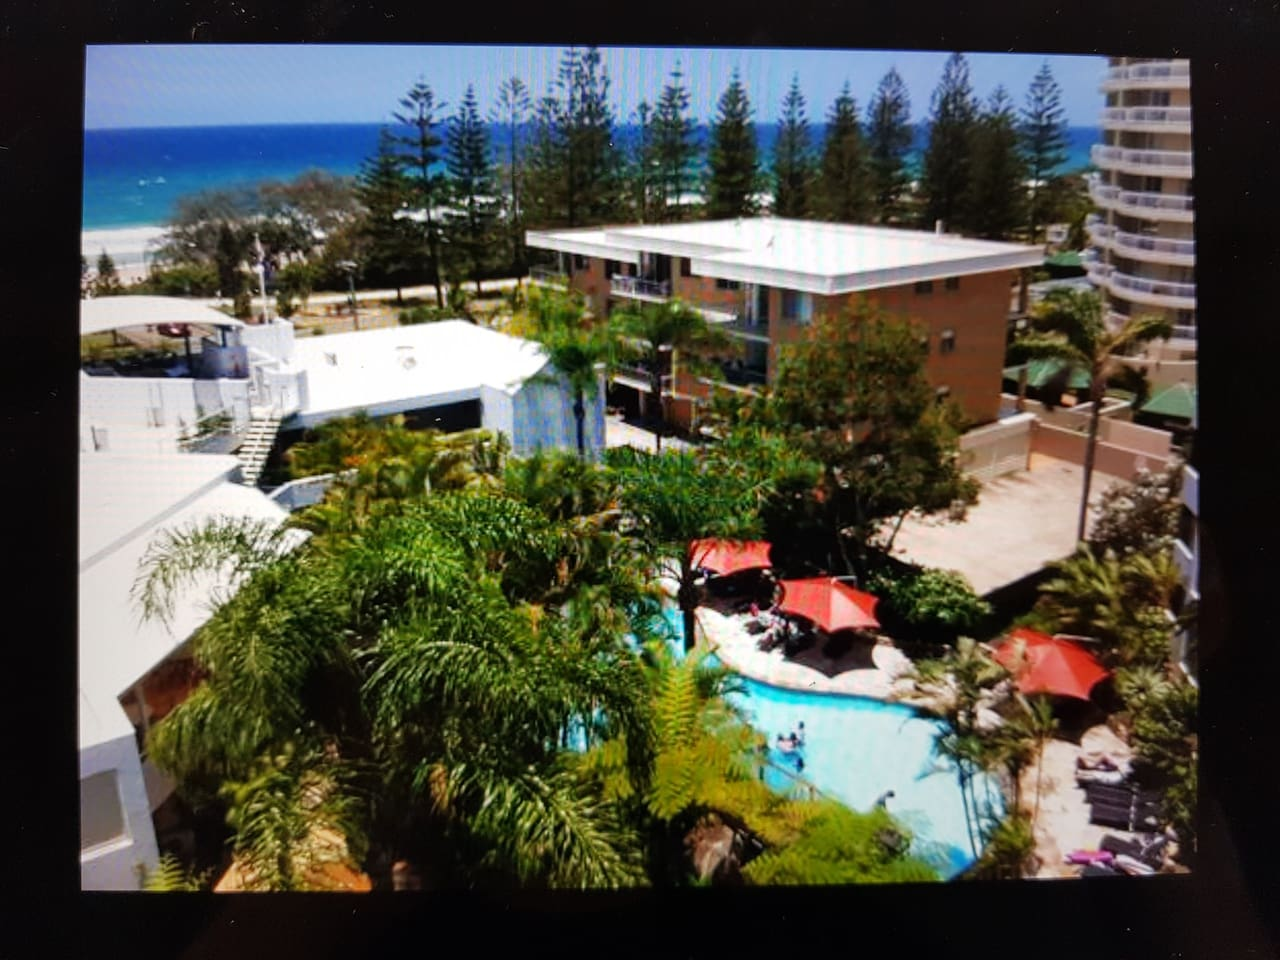 Mariner Shores Resort and Beach Club is your family holiday oasis located at North Burleigh.